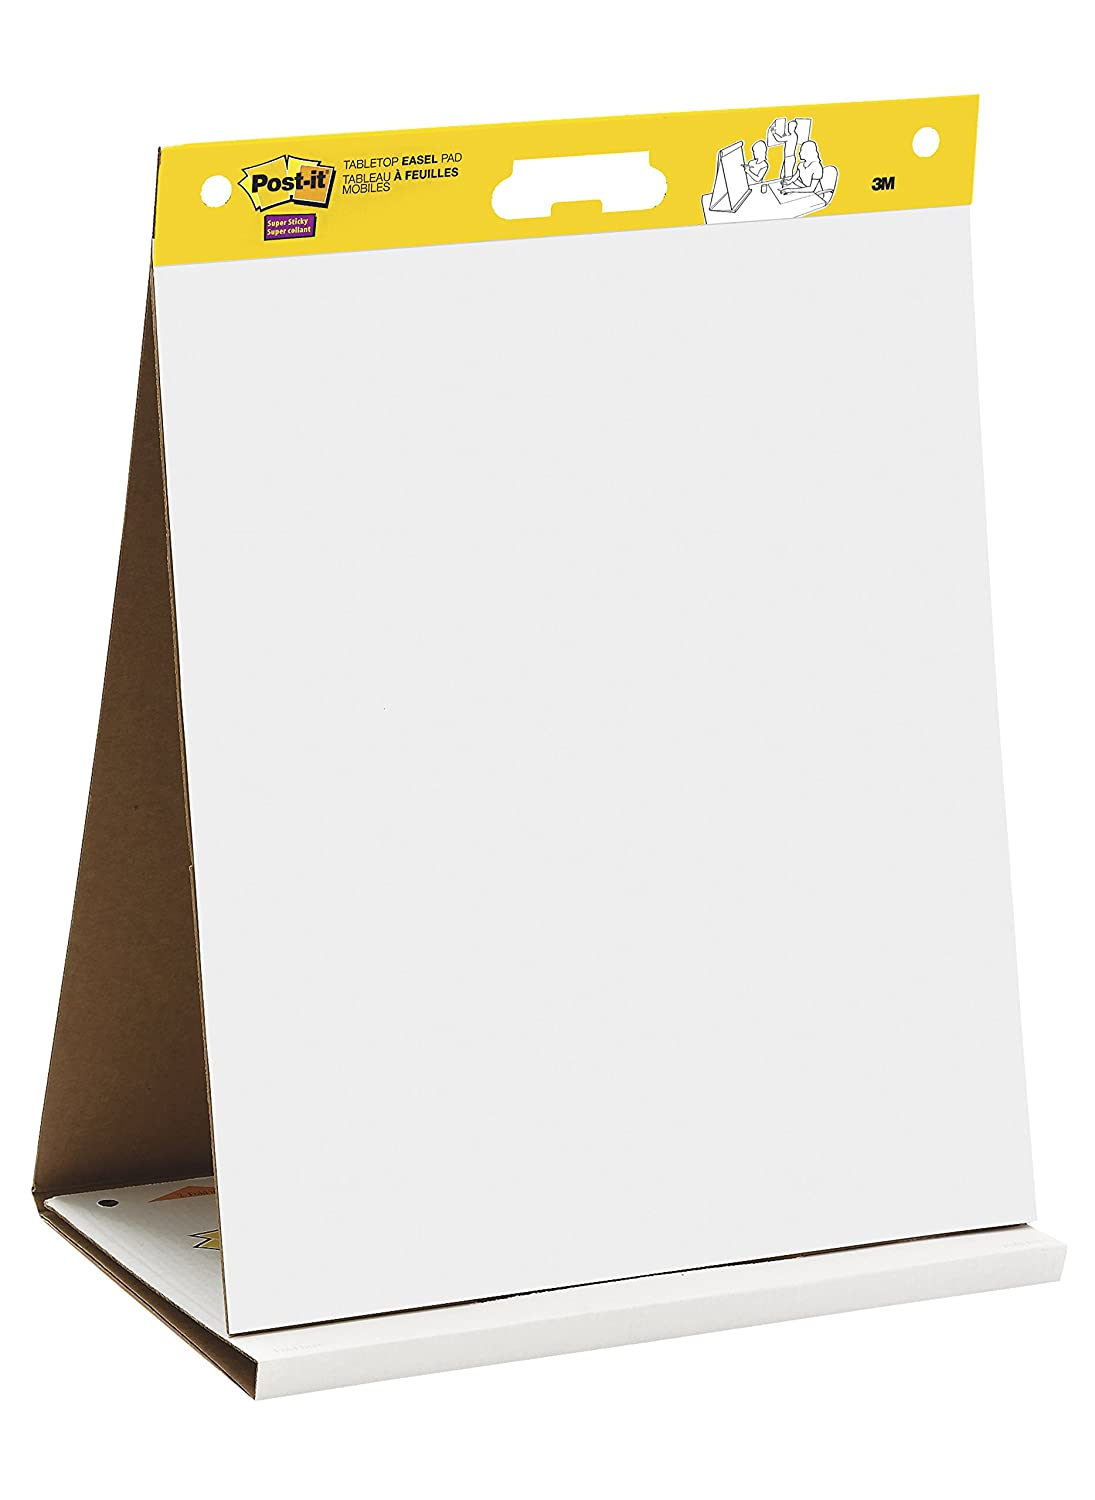 Post-it 563R Tabletop Easel Pad, 20 x 23-Inches, White, 20-Sheets/Pad 3M Office Products